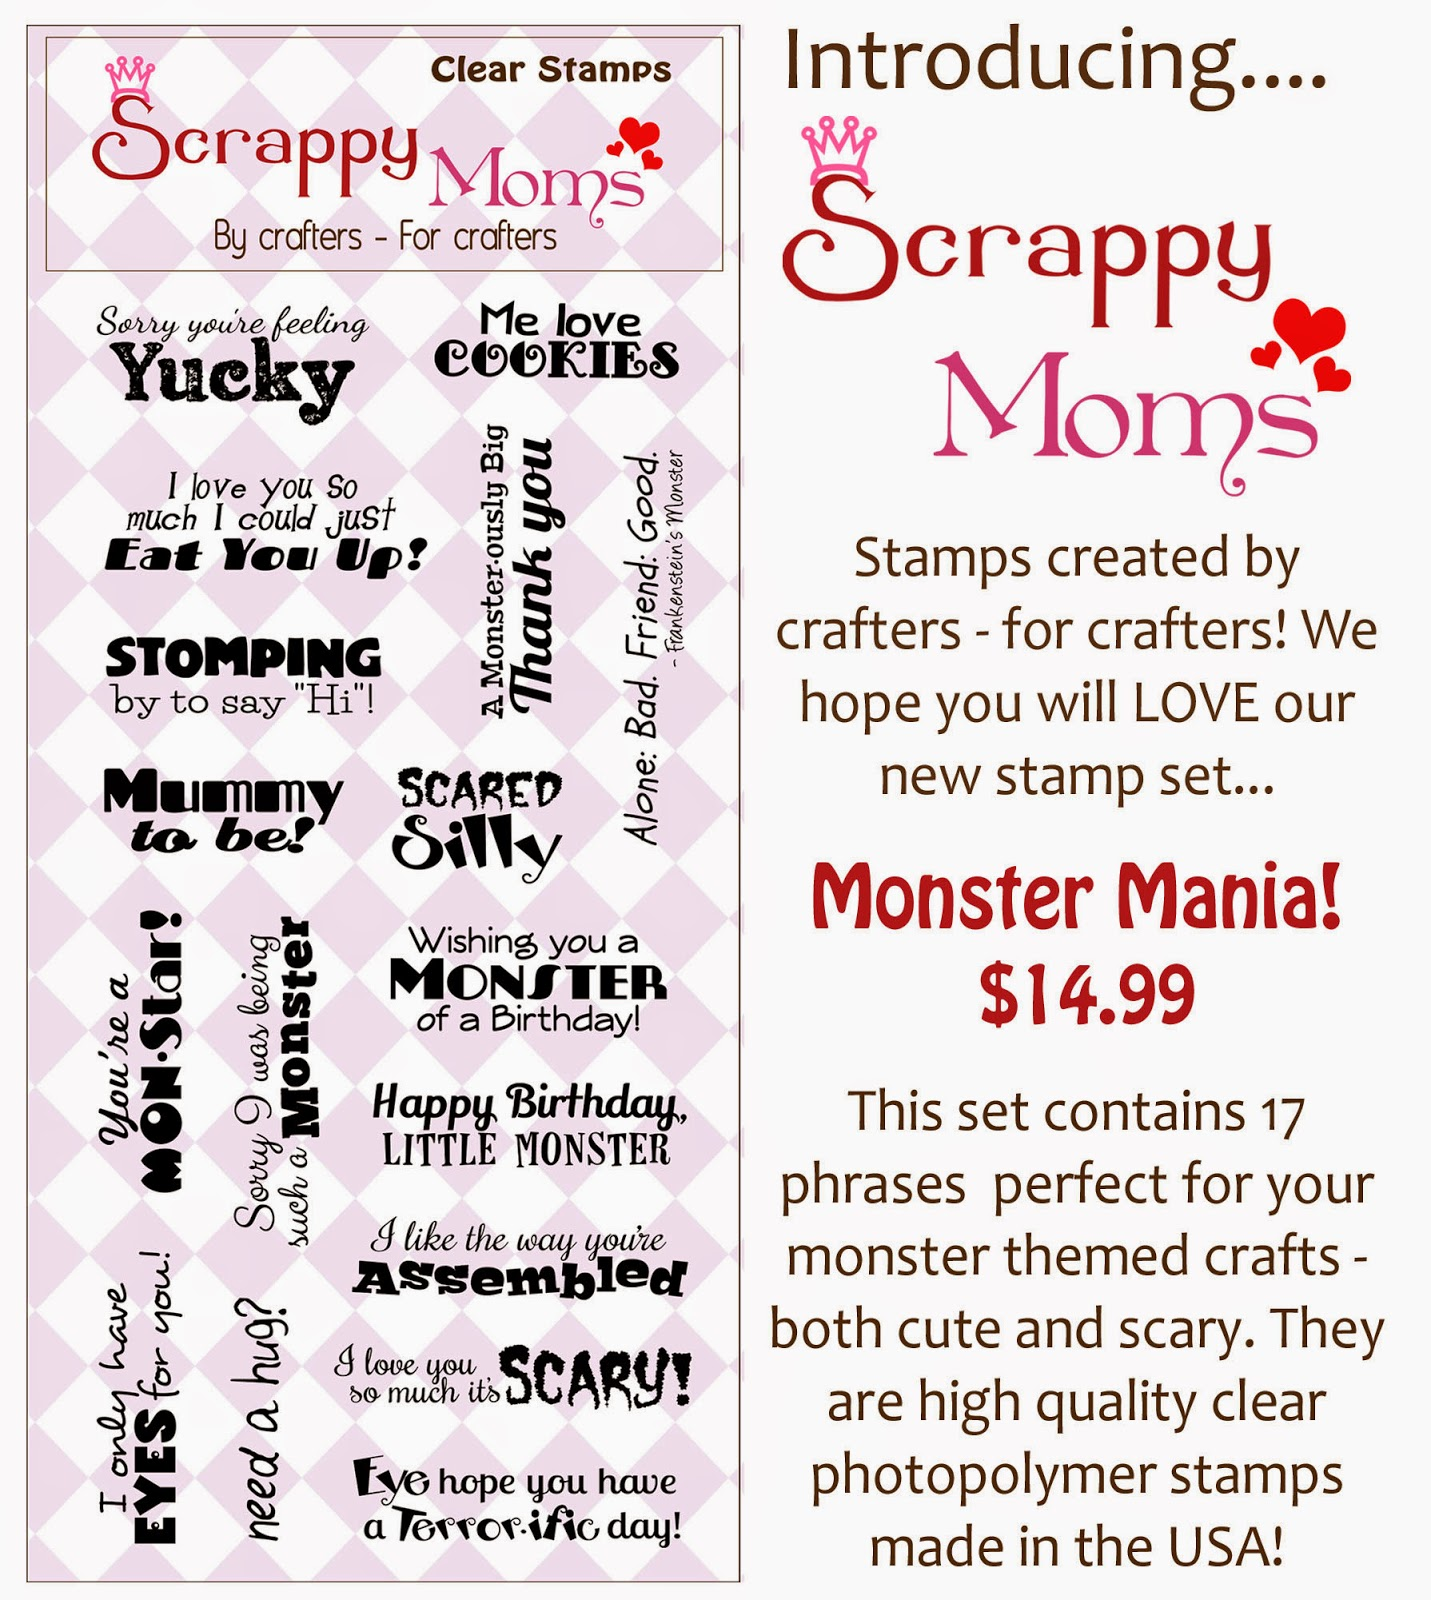 http://scrappymoms-stamps-store.blogspot.co.uk/2012/05/form-target-img-alt-border0-srchttpswww.html